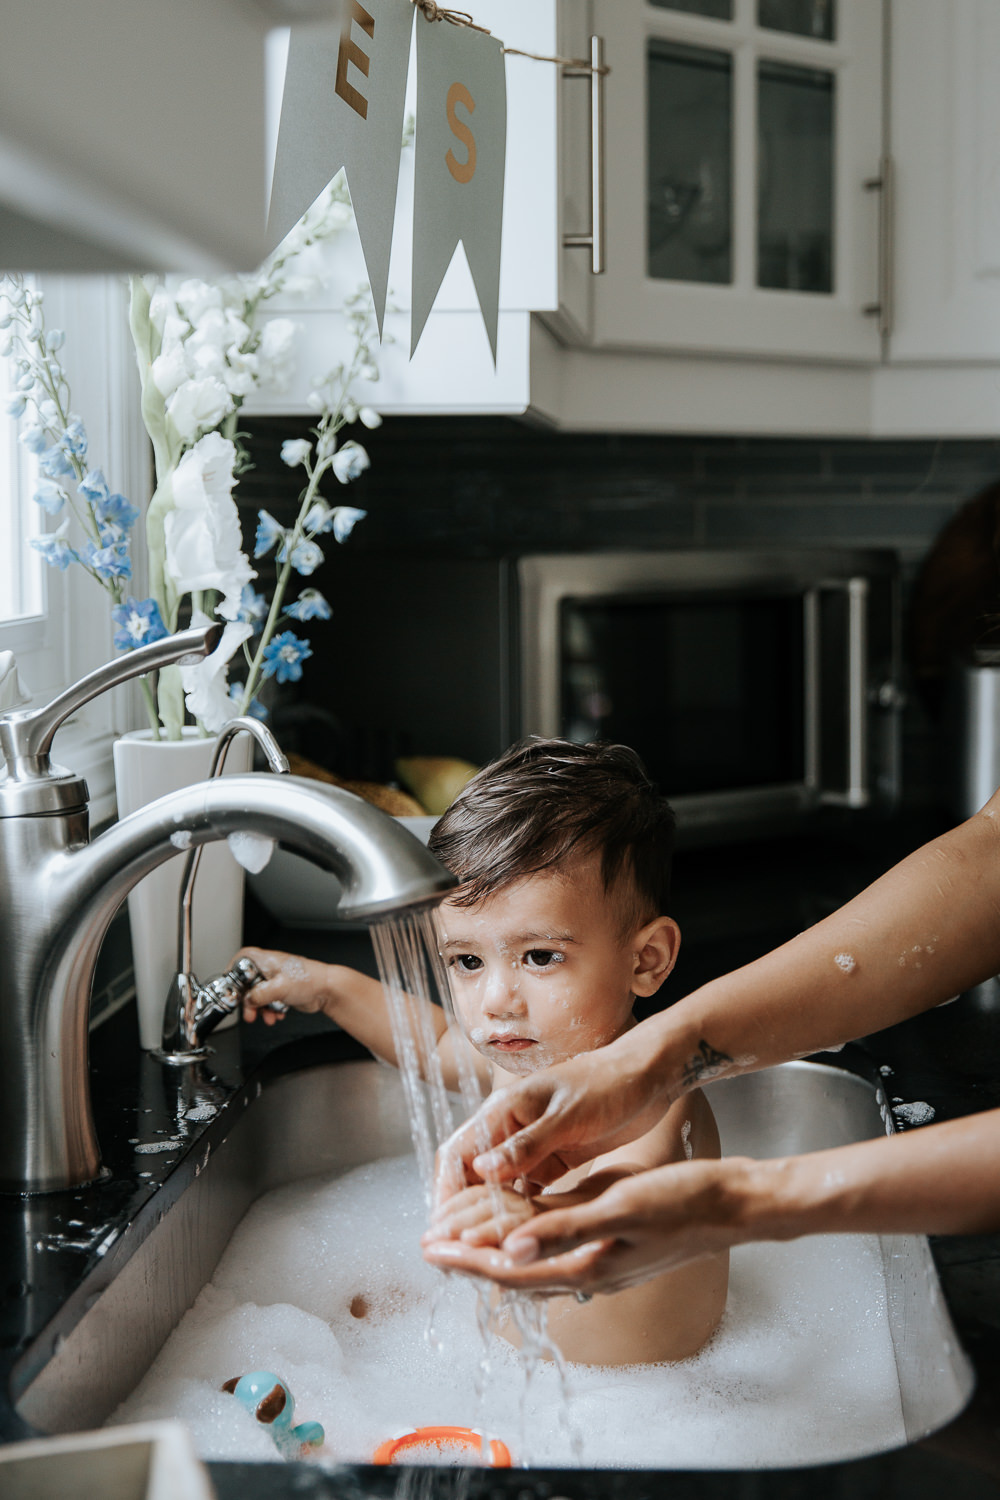 1 year old baby boy with dark hair and eyes sitting in kitchen sink getting bath, water running as mom holds son's hand under it - Newmarket Lifestyle Photography